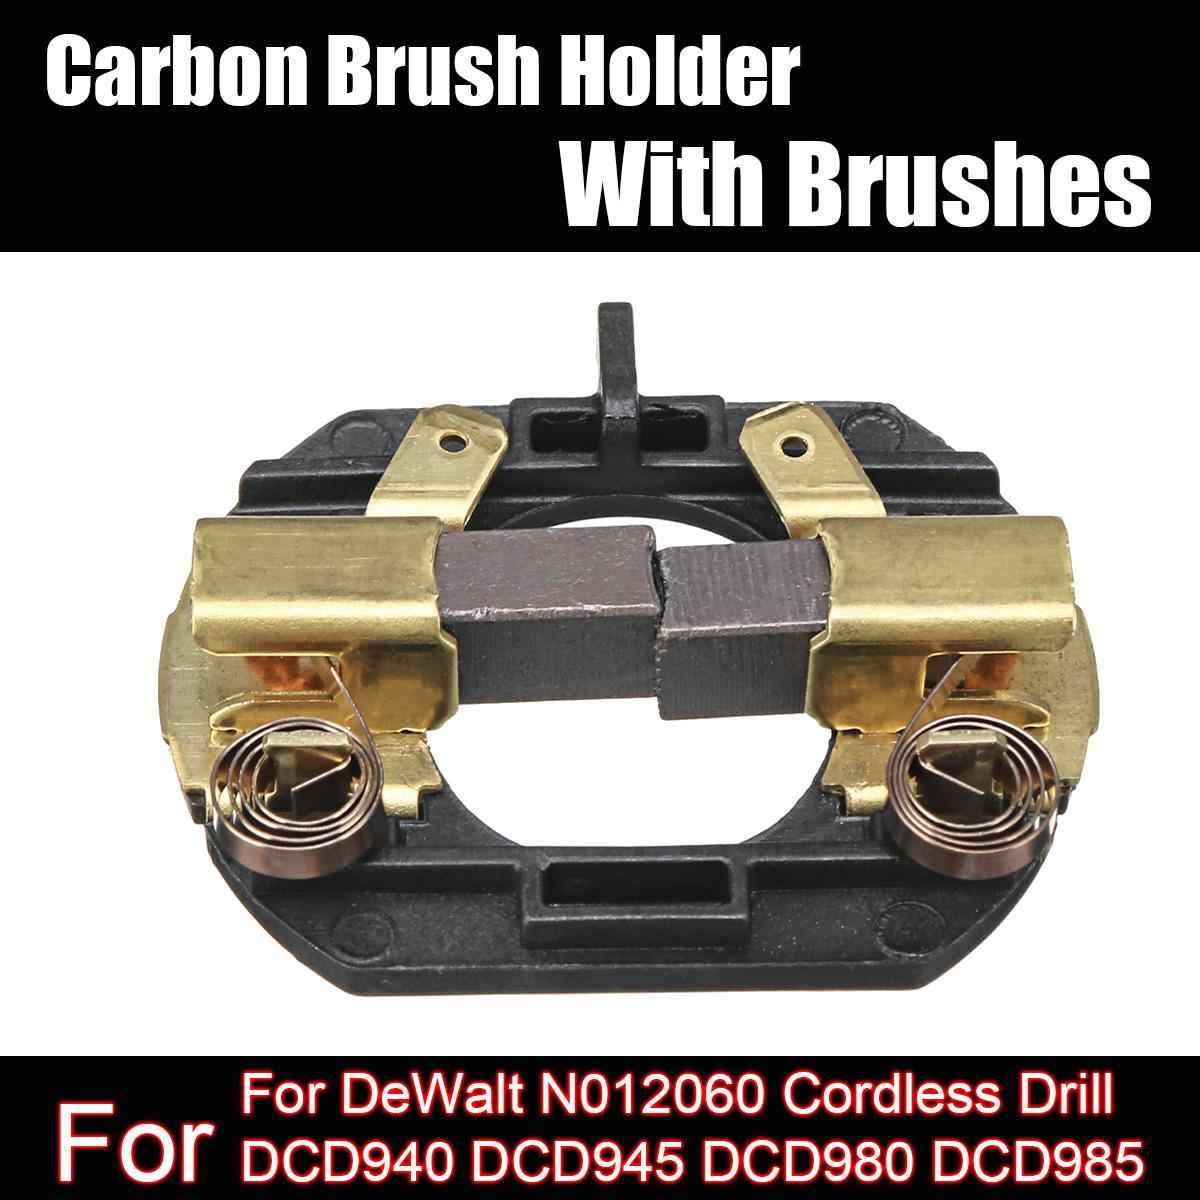 Carbon Brush Holder With Brushes Fit for Cordless Drill DCD730 DCD735 DCD780